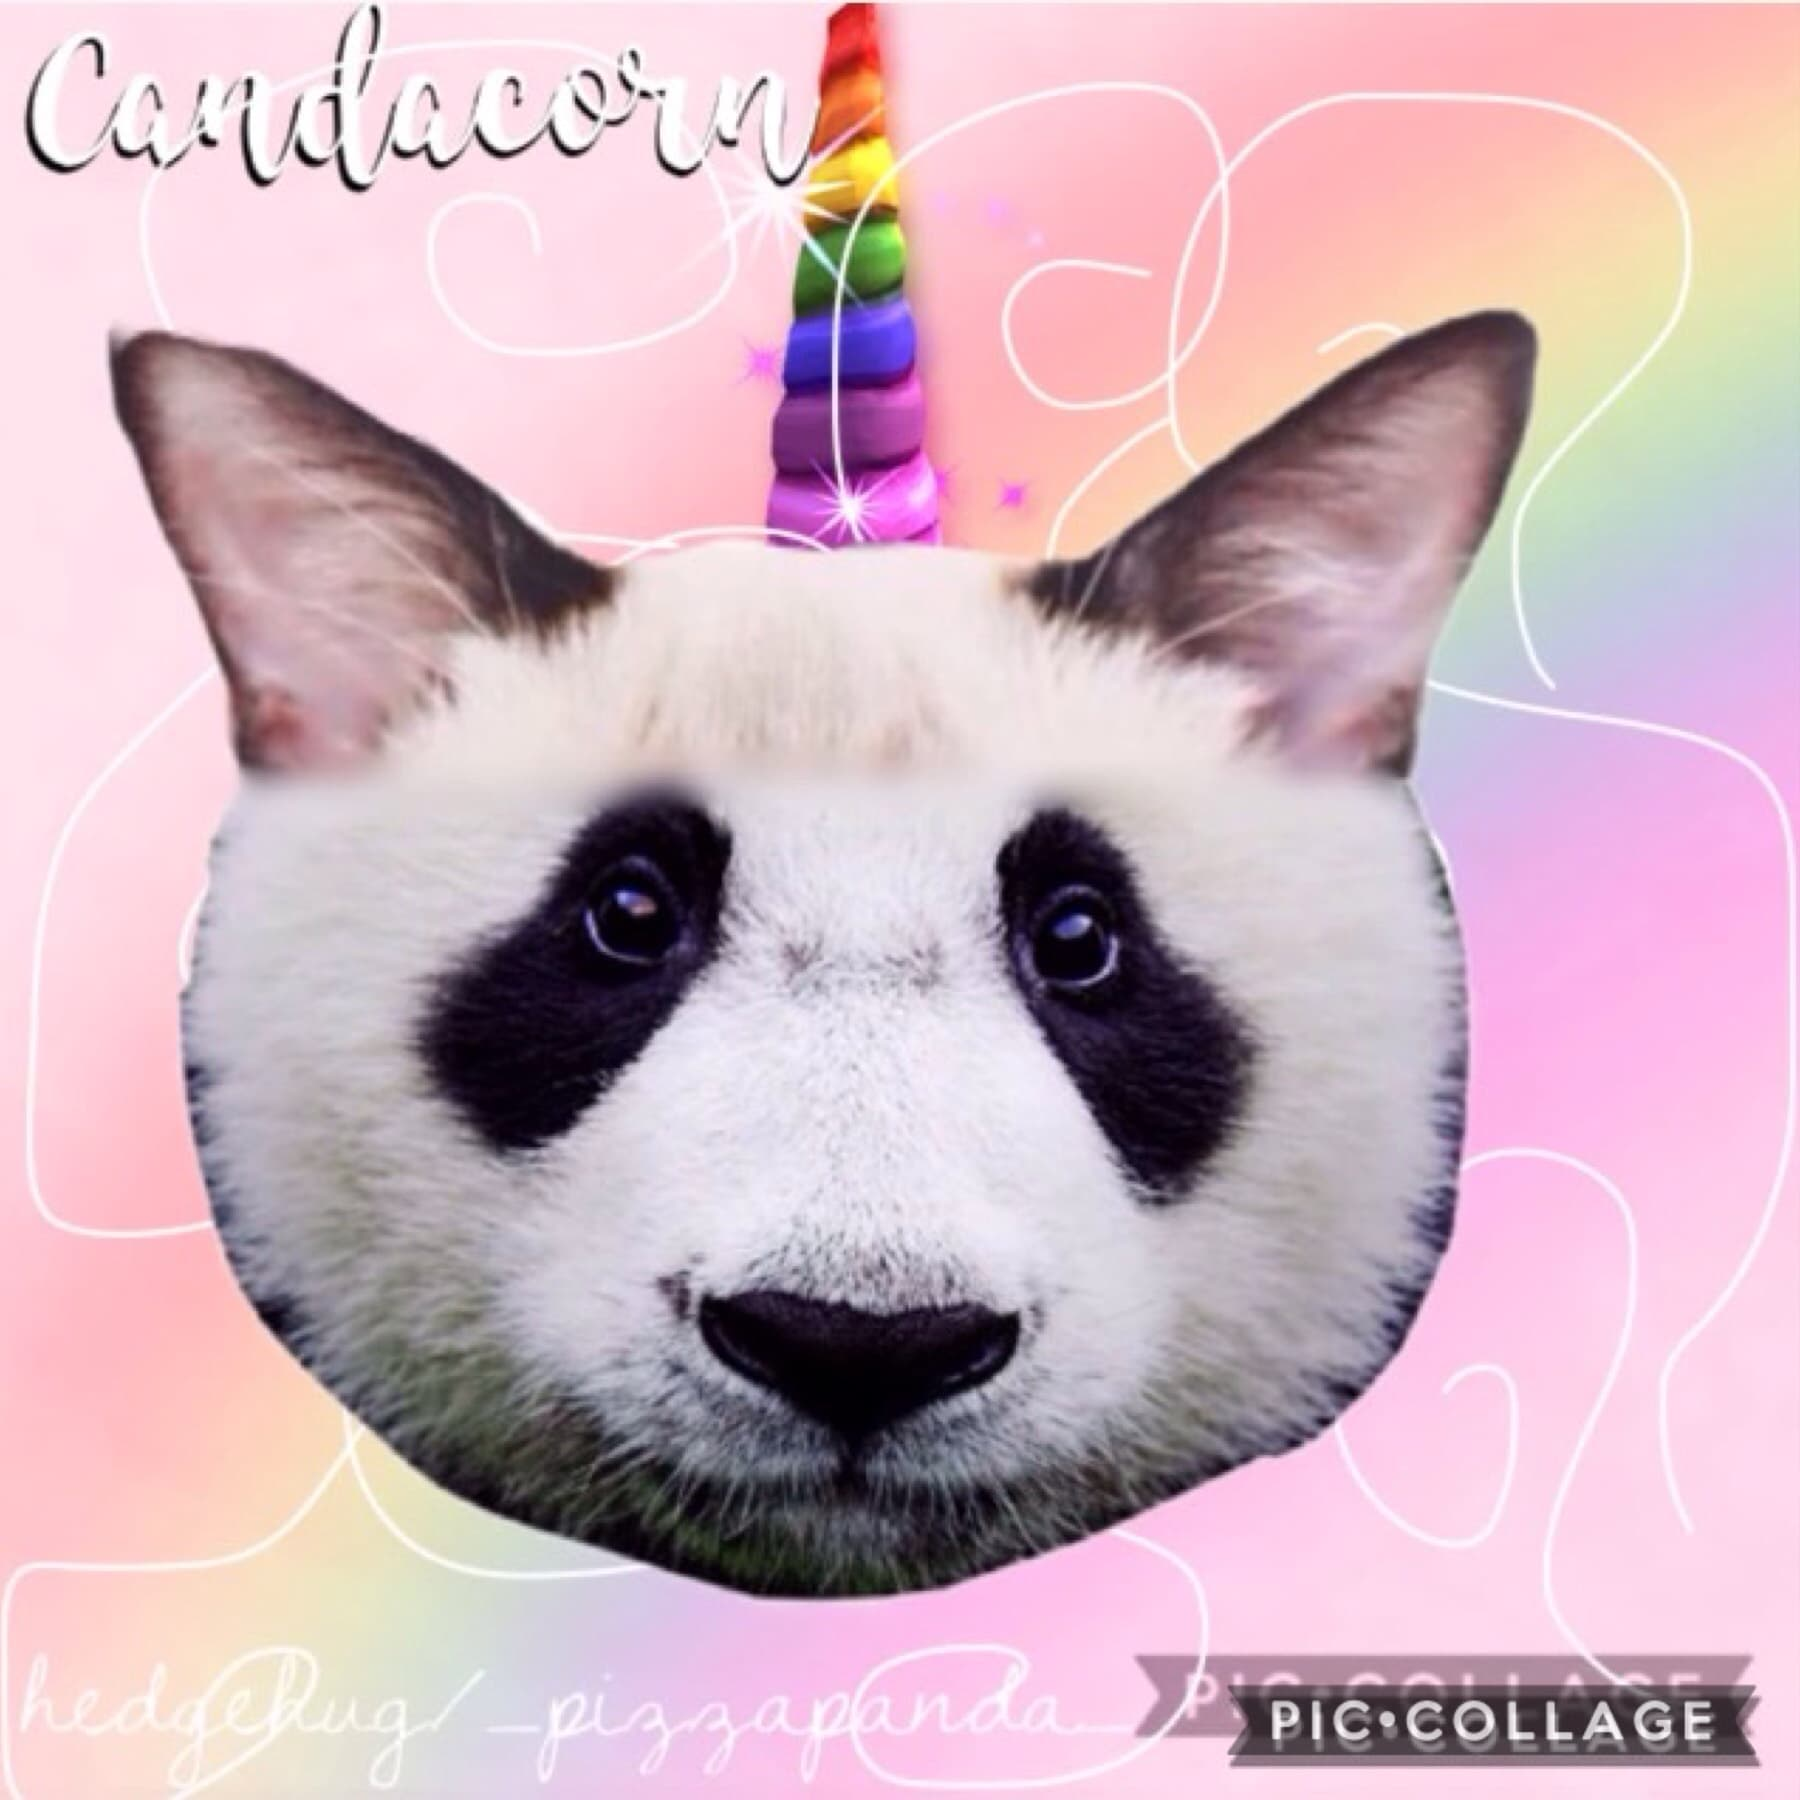 Hi people. I made this like a really long time ago with the awesome hedgehug! It's a combination of cat+panda+unicorn! Cont. in comments